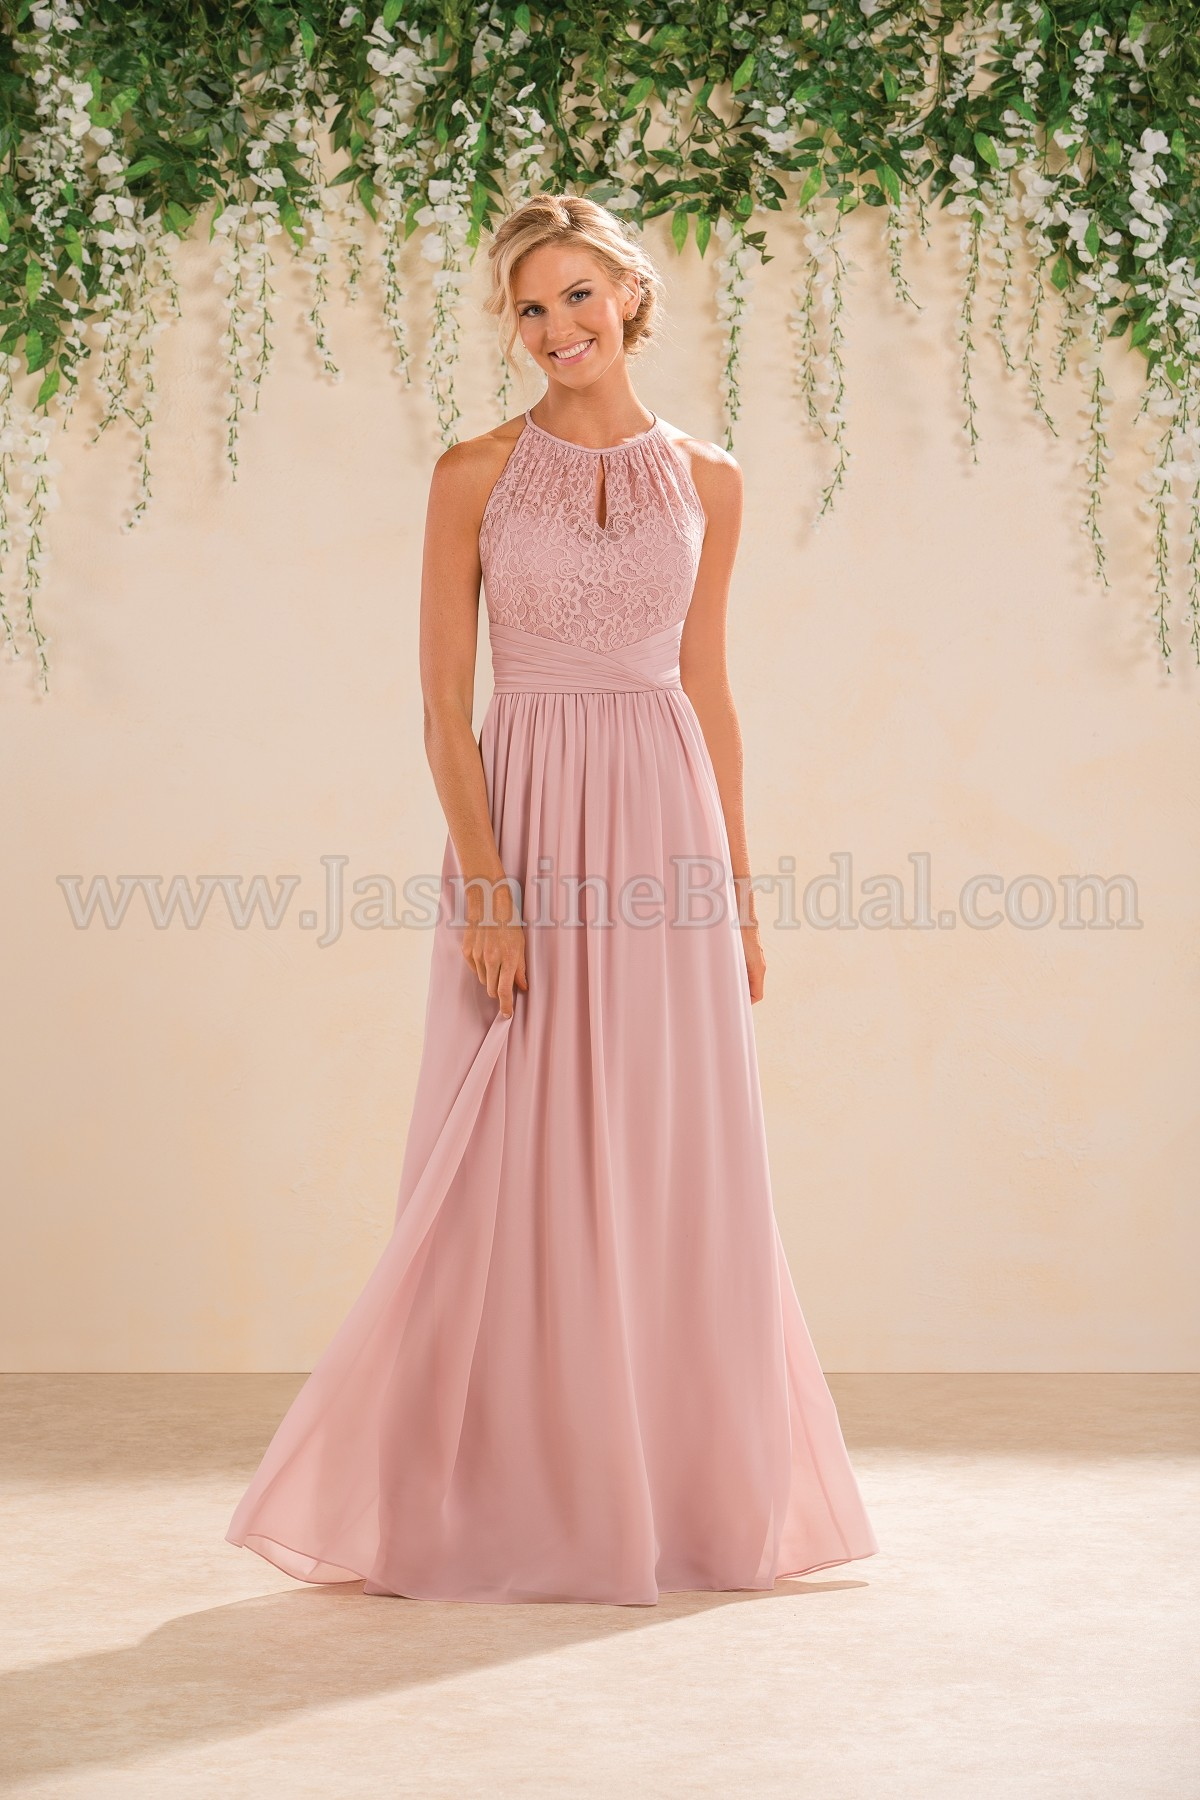 bridesmaid-dresses-B183016-F